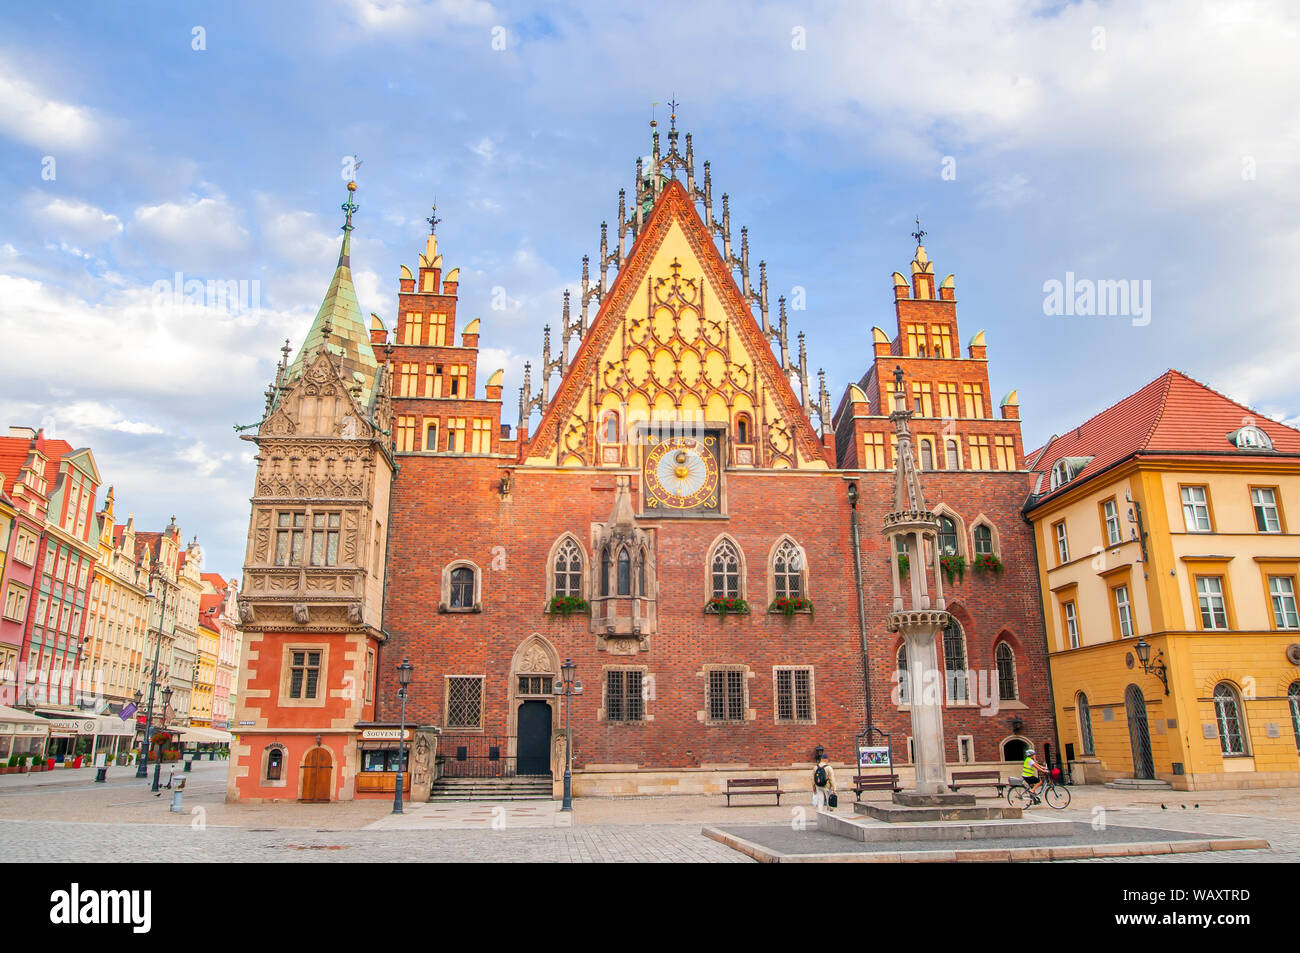 Wroclaw, Poland, October 2017. View of main square and city hall. Stock Photo